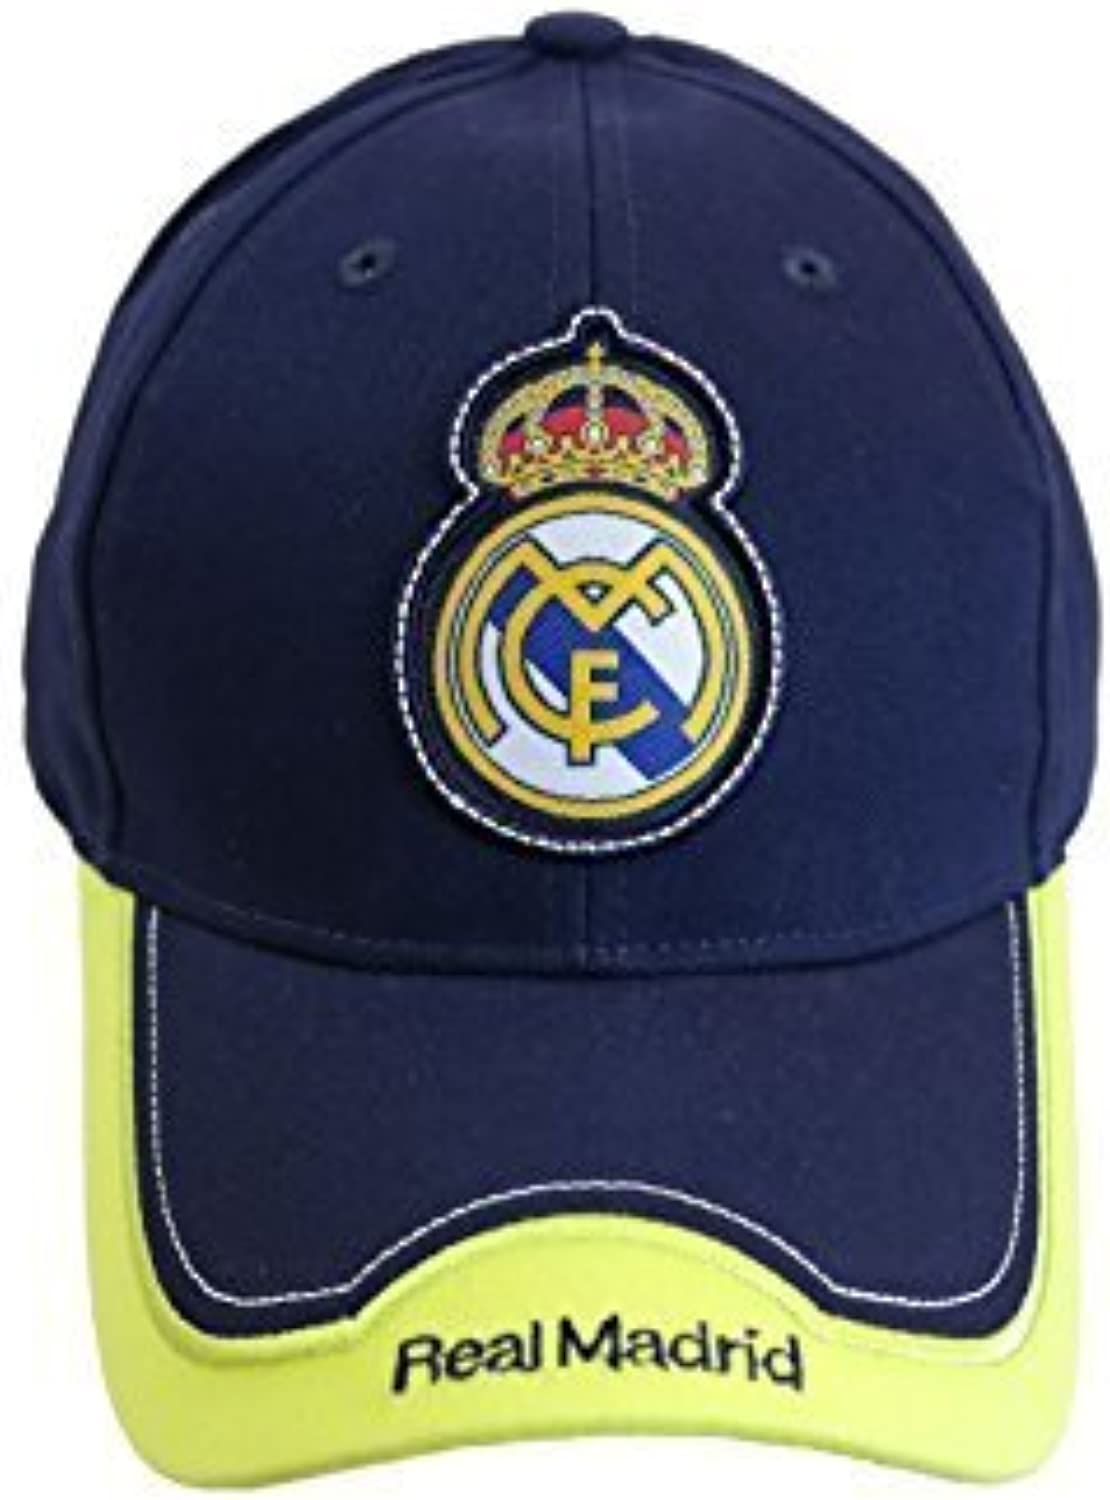 Real Madrid Authentic Official Licensed Soccer Cap One Size 006 by Rhinox